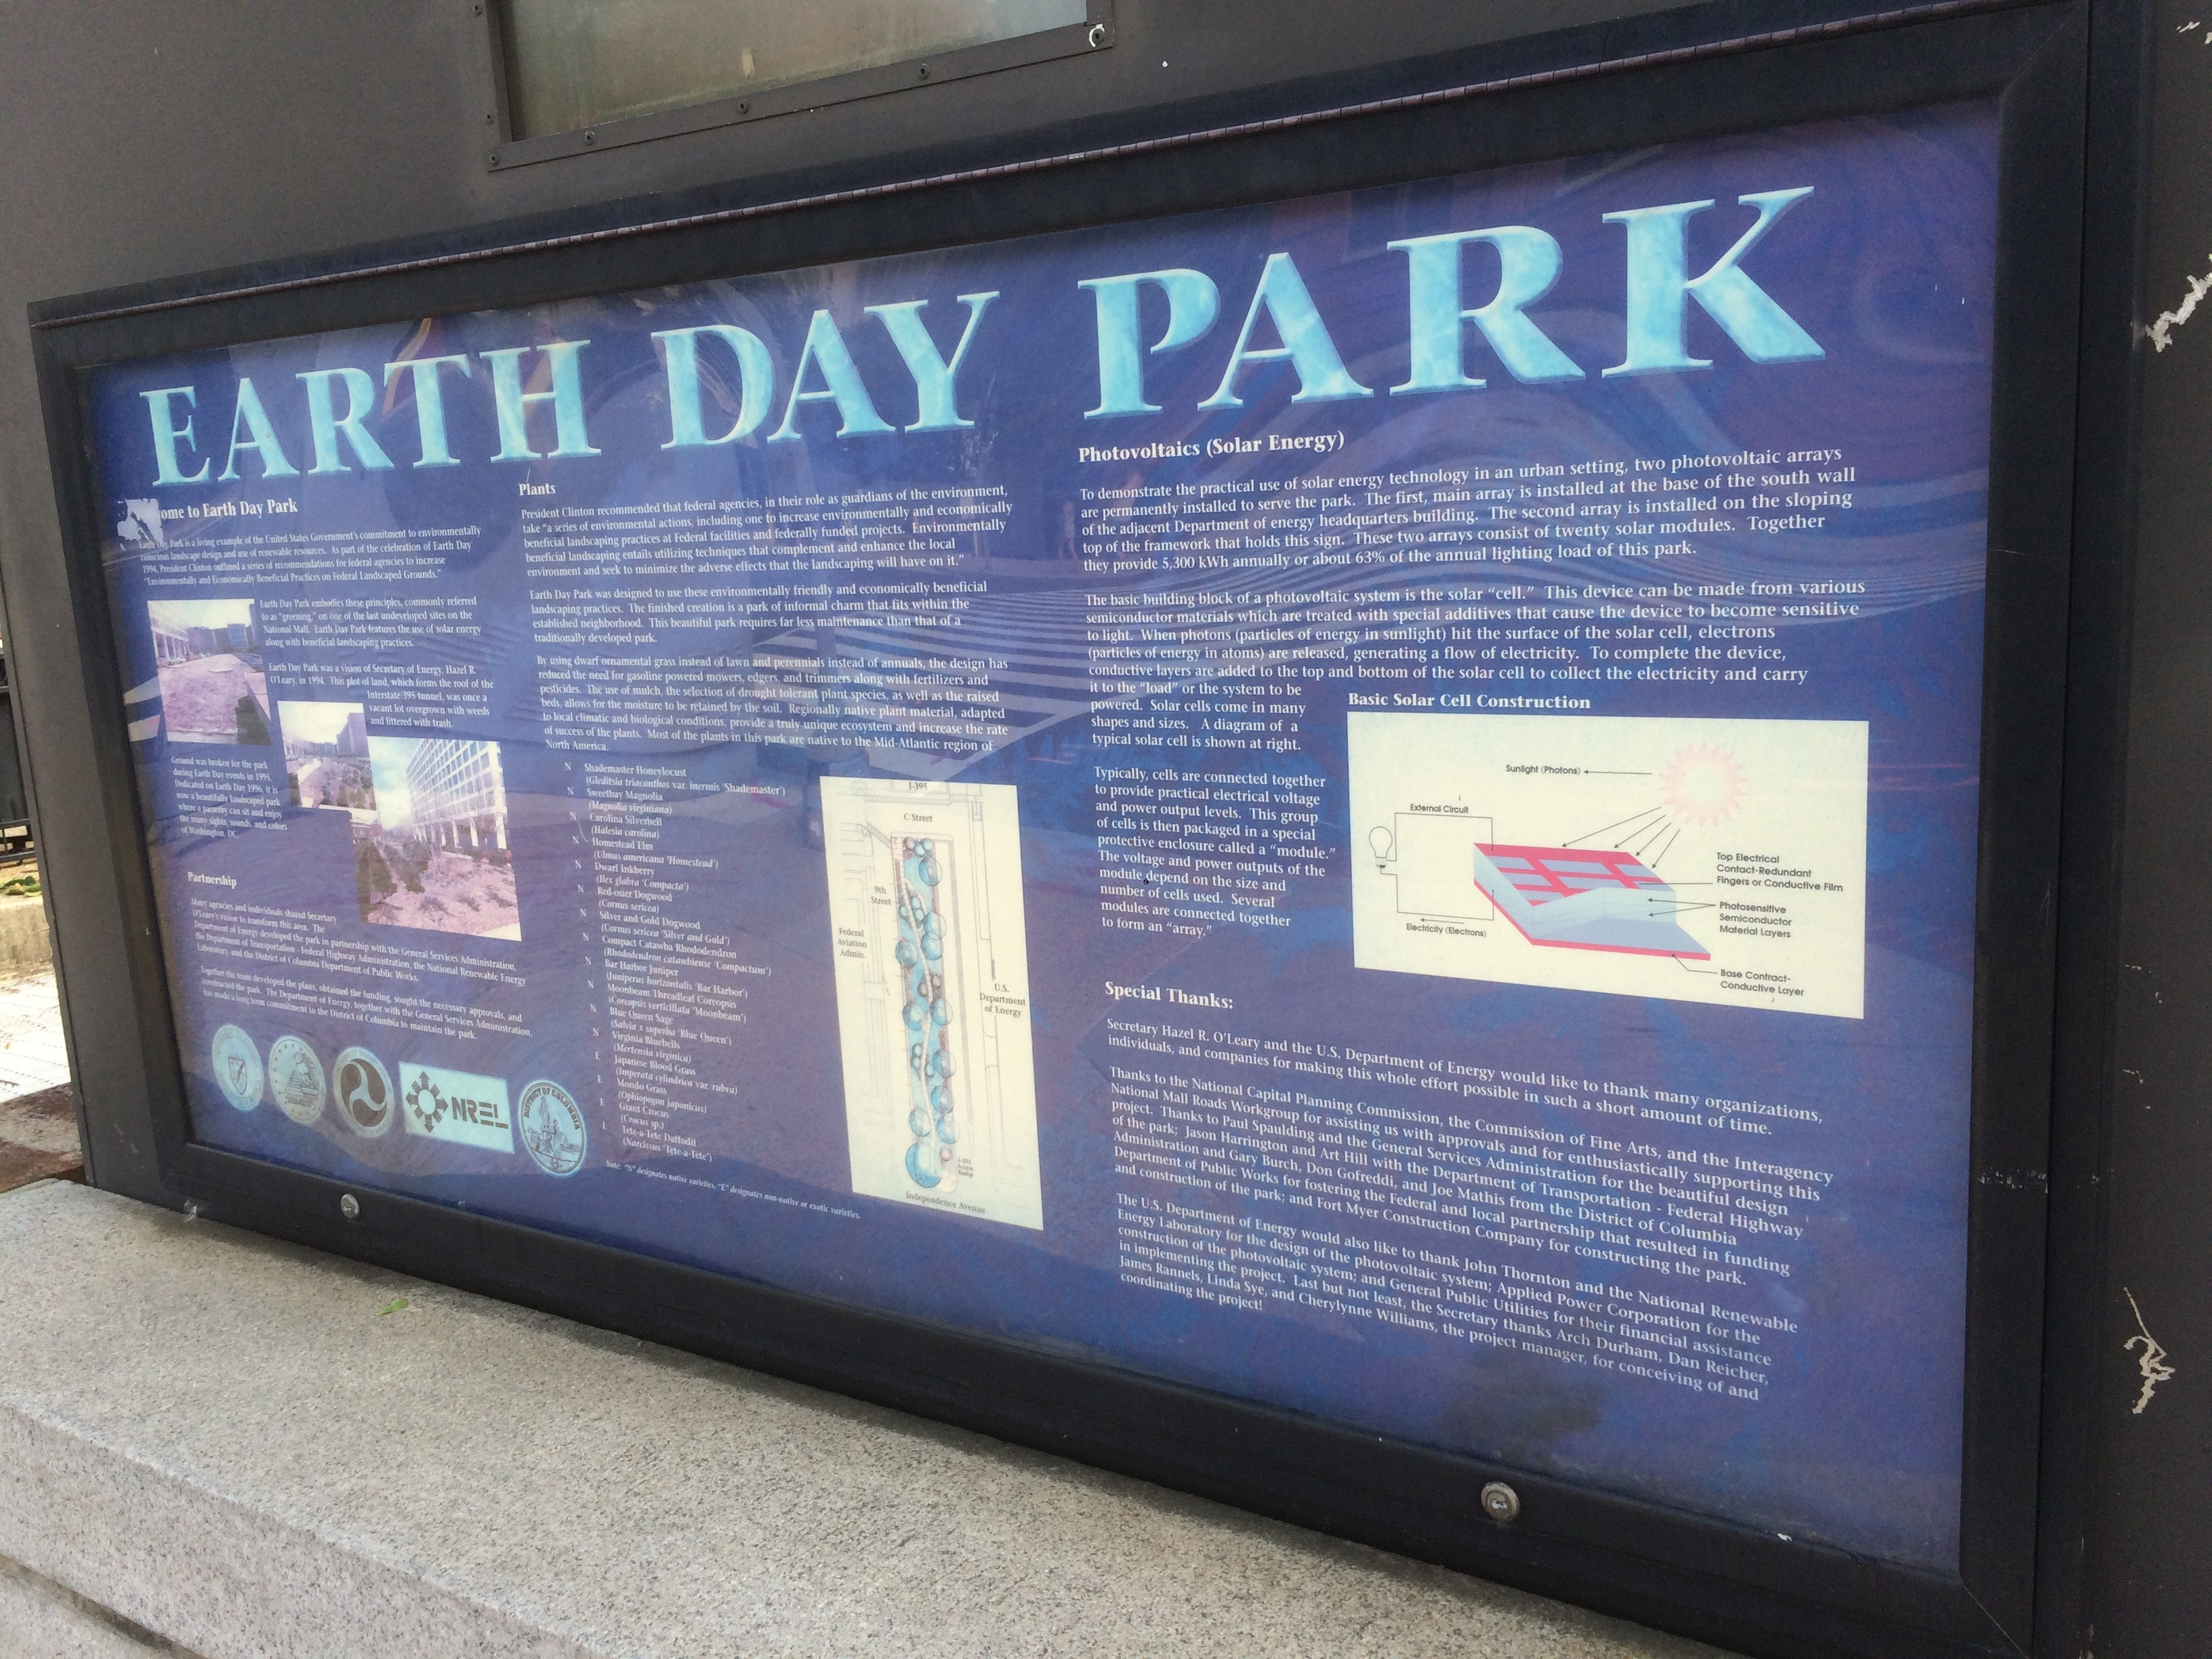 Earth Day Park Marker